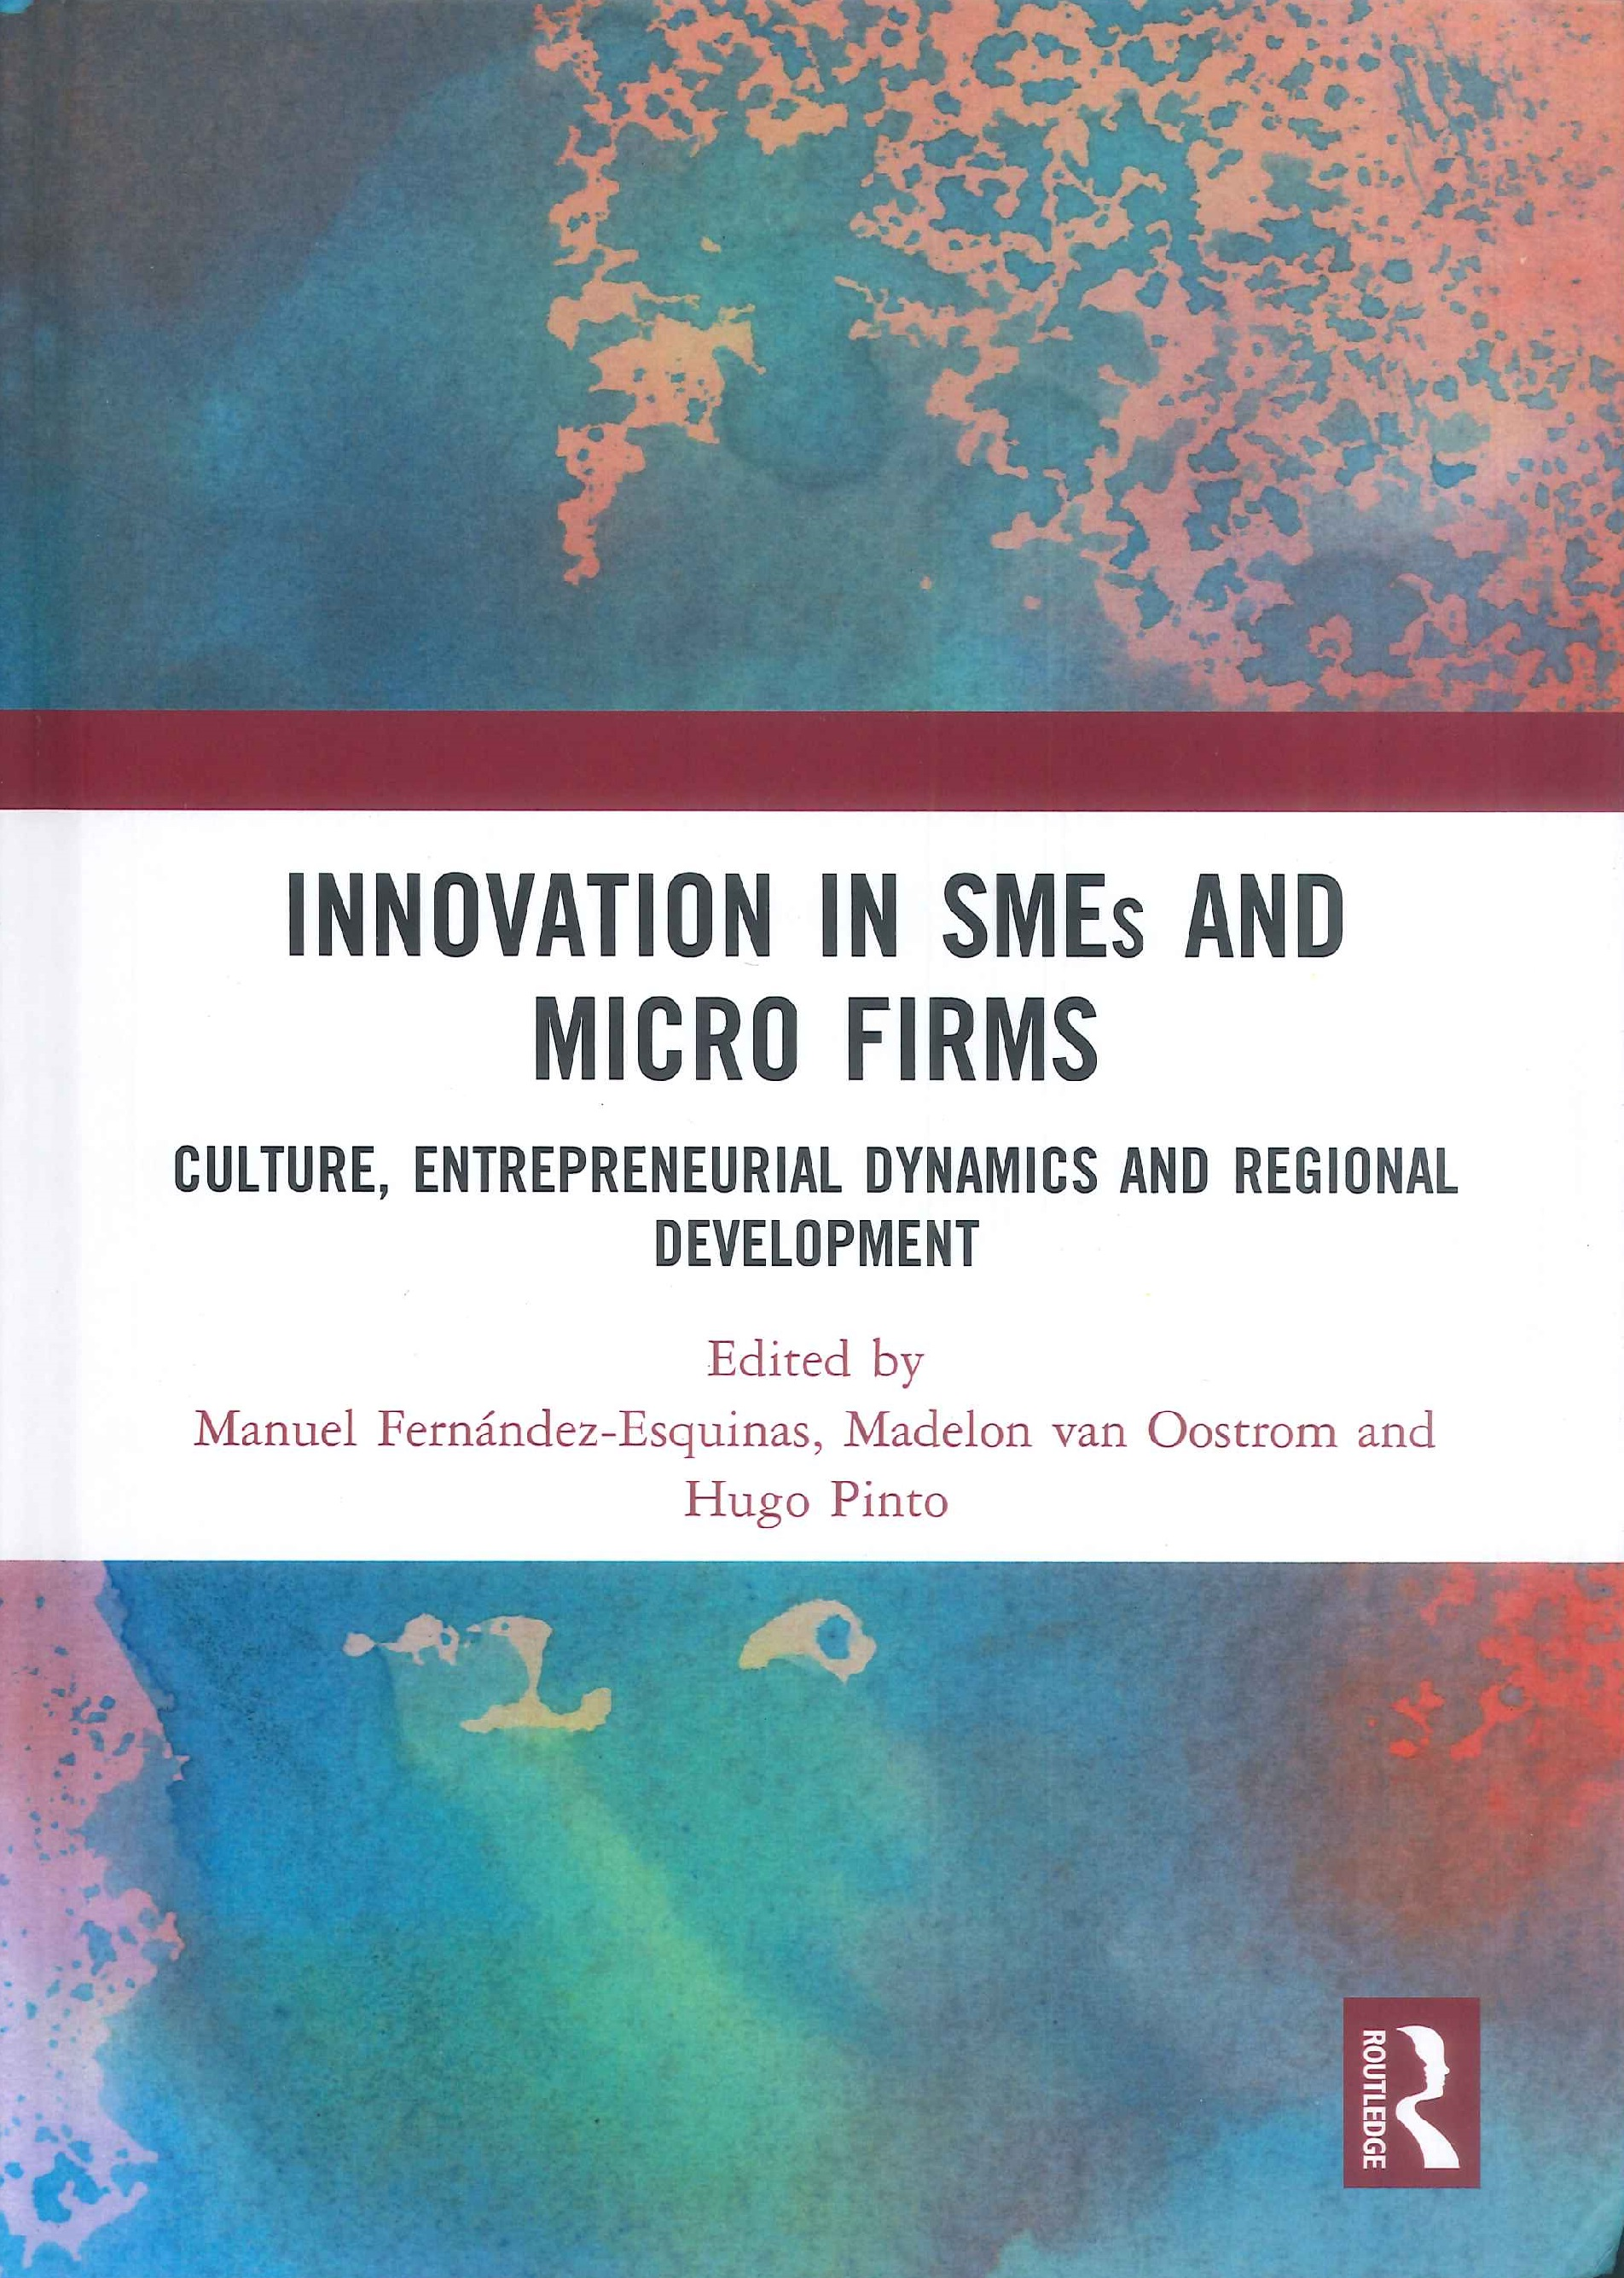 Innovation in SMEs and micro firms:culture, entrepreneurial dynamics and regional development